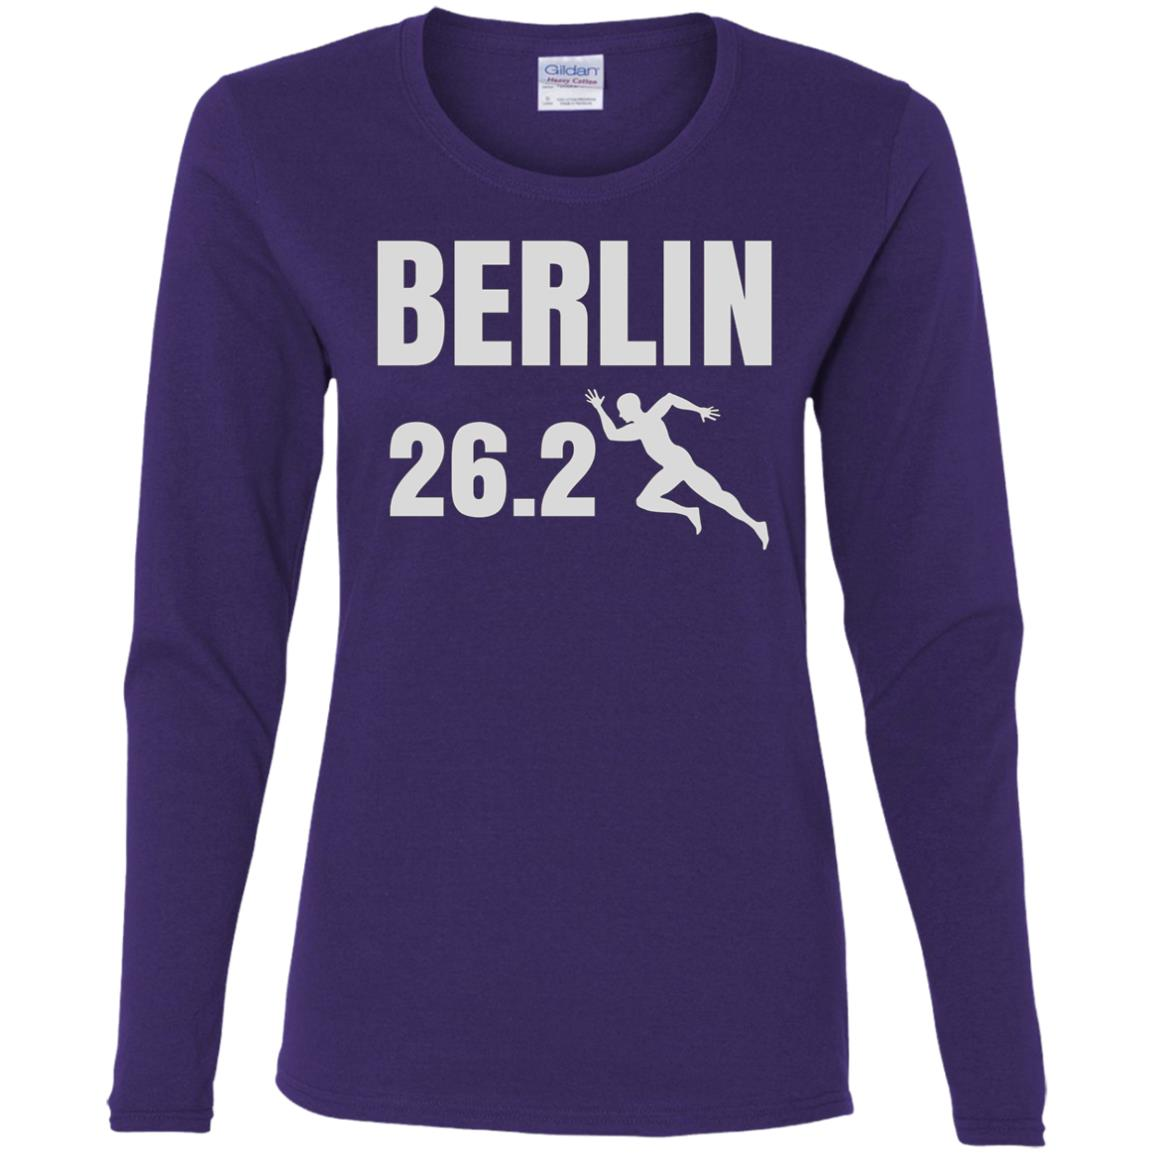 Berlin 26 Miles Marathon Running for Men and Women Women Long Sleeve T-Shirt